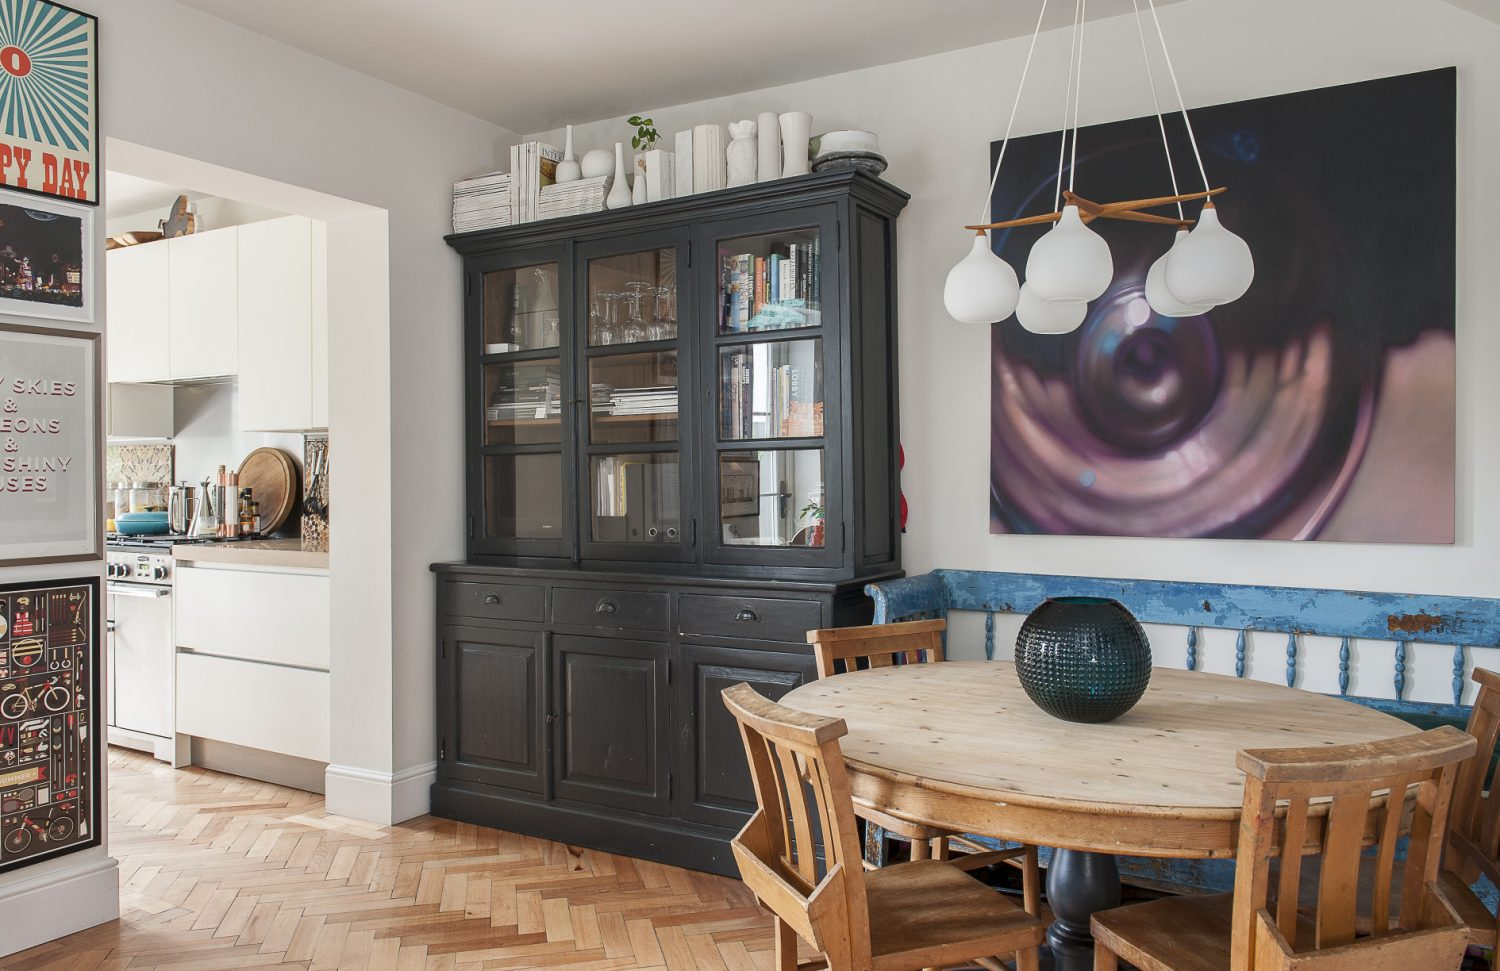 The open-plan kitchen and dining area both feature reclaimed parquet flooring, interconnecting the rooms and making the whole area feel light and bright. The kitchen, which now opens directly on to the garden was once dark and cluttered and accessed via a dining room